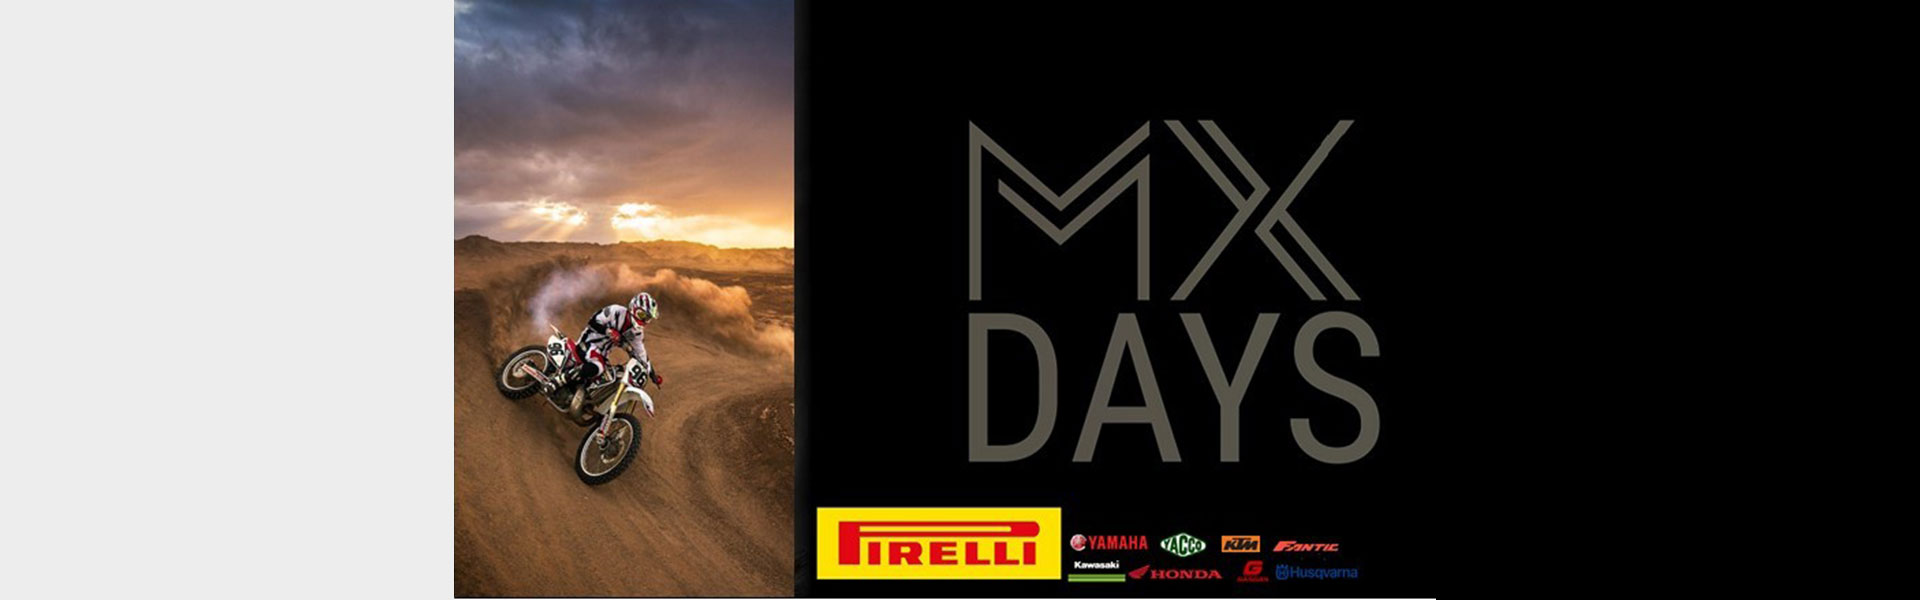 Journée Pirelli MX Days 2021